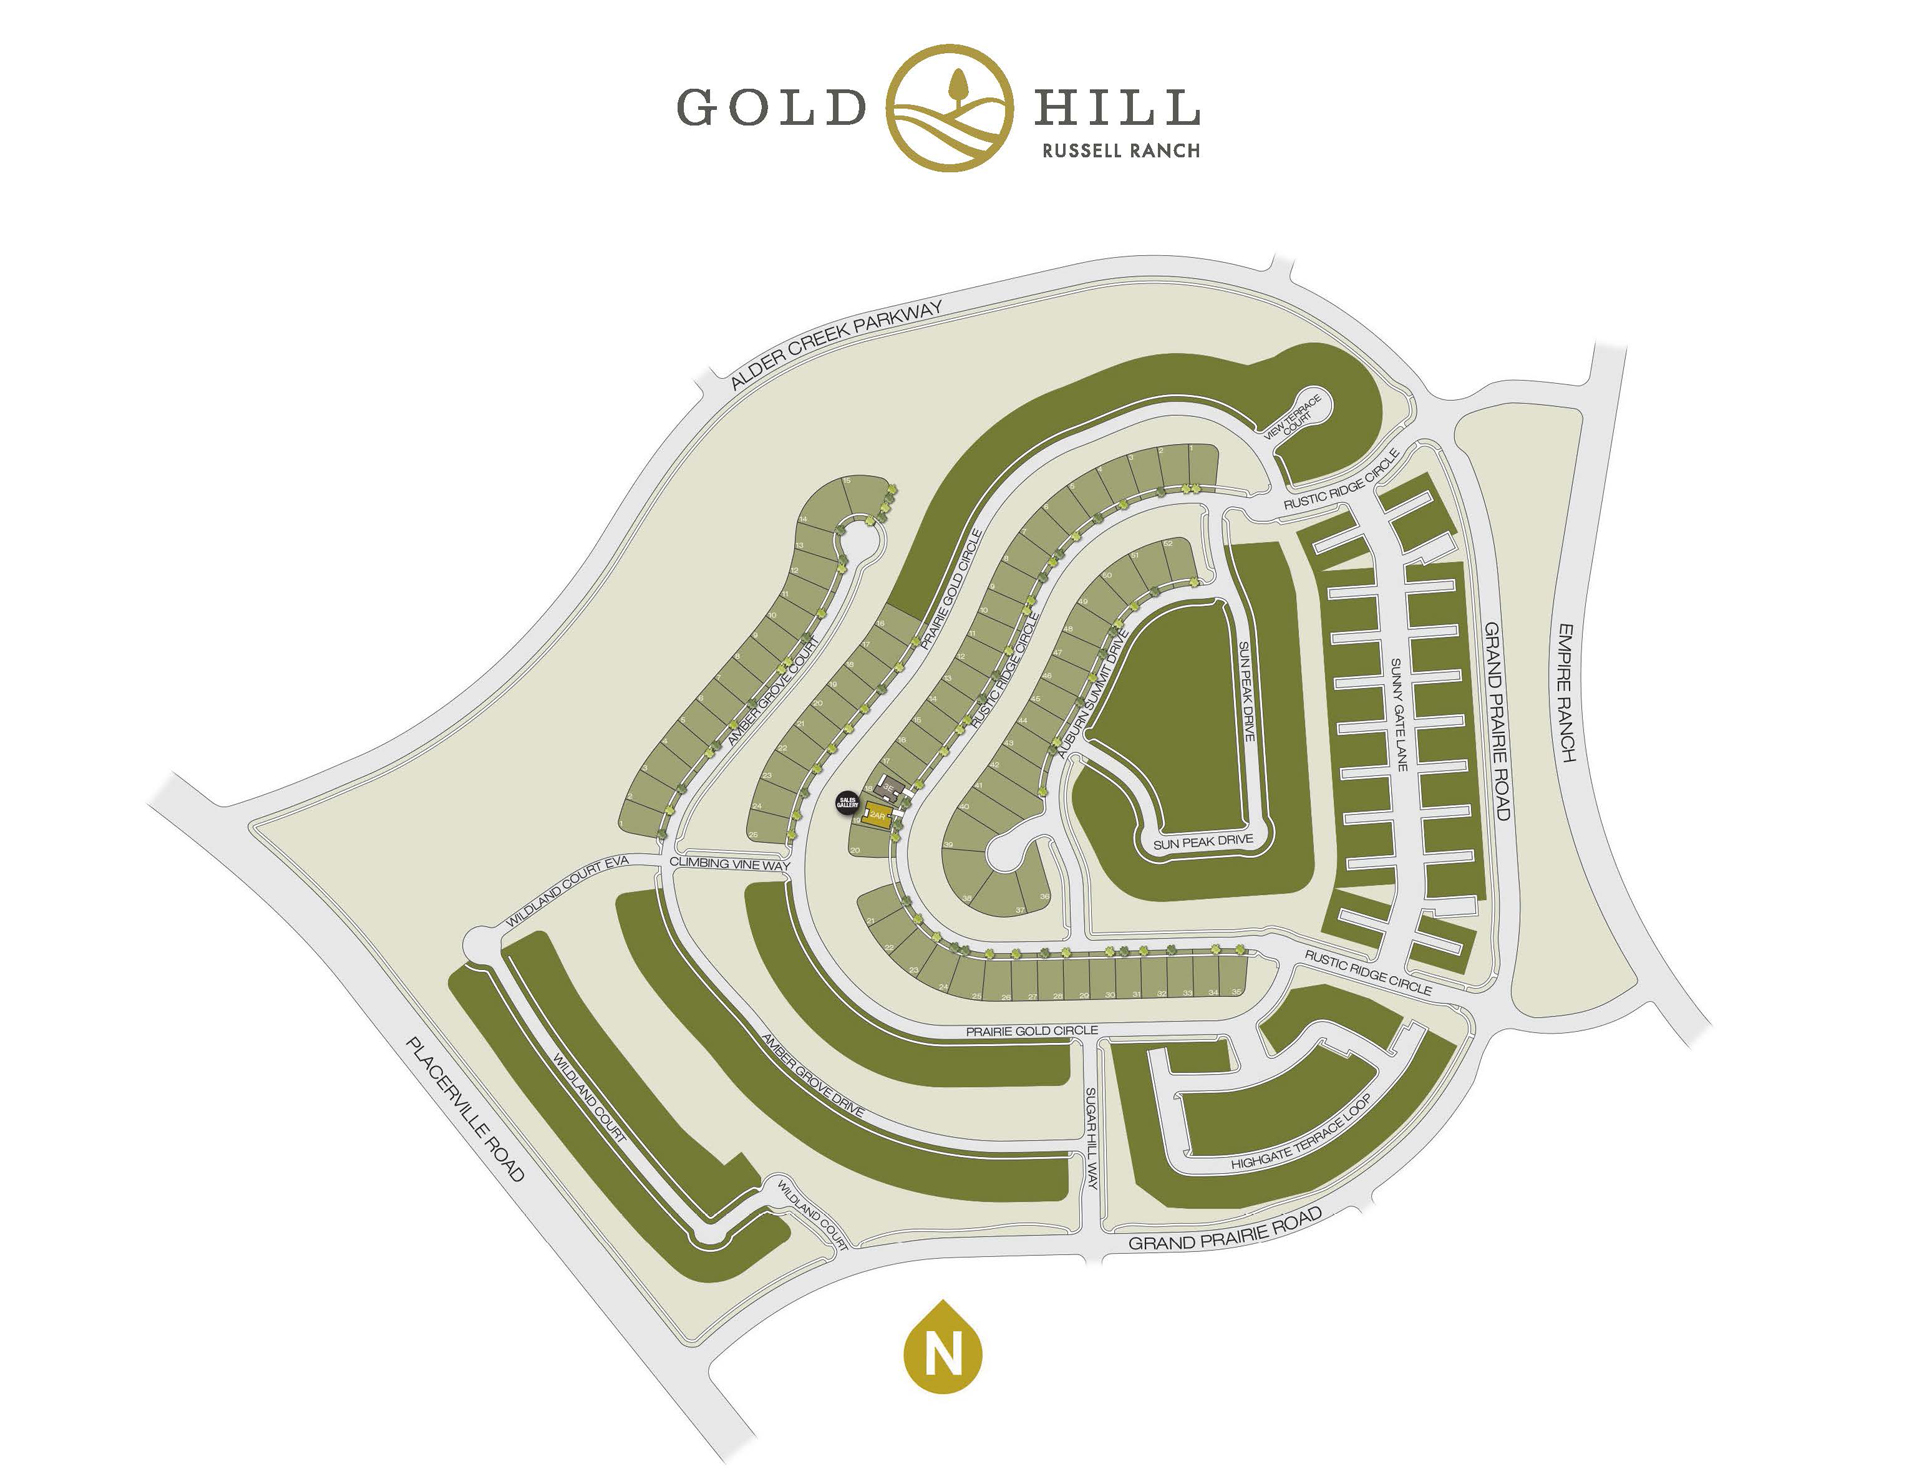 Gold Hill Site Plan